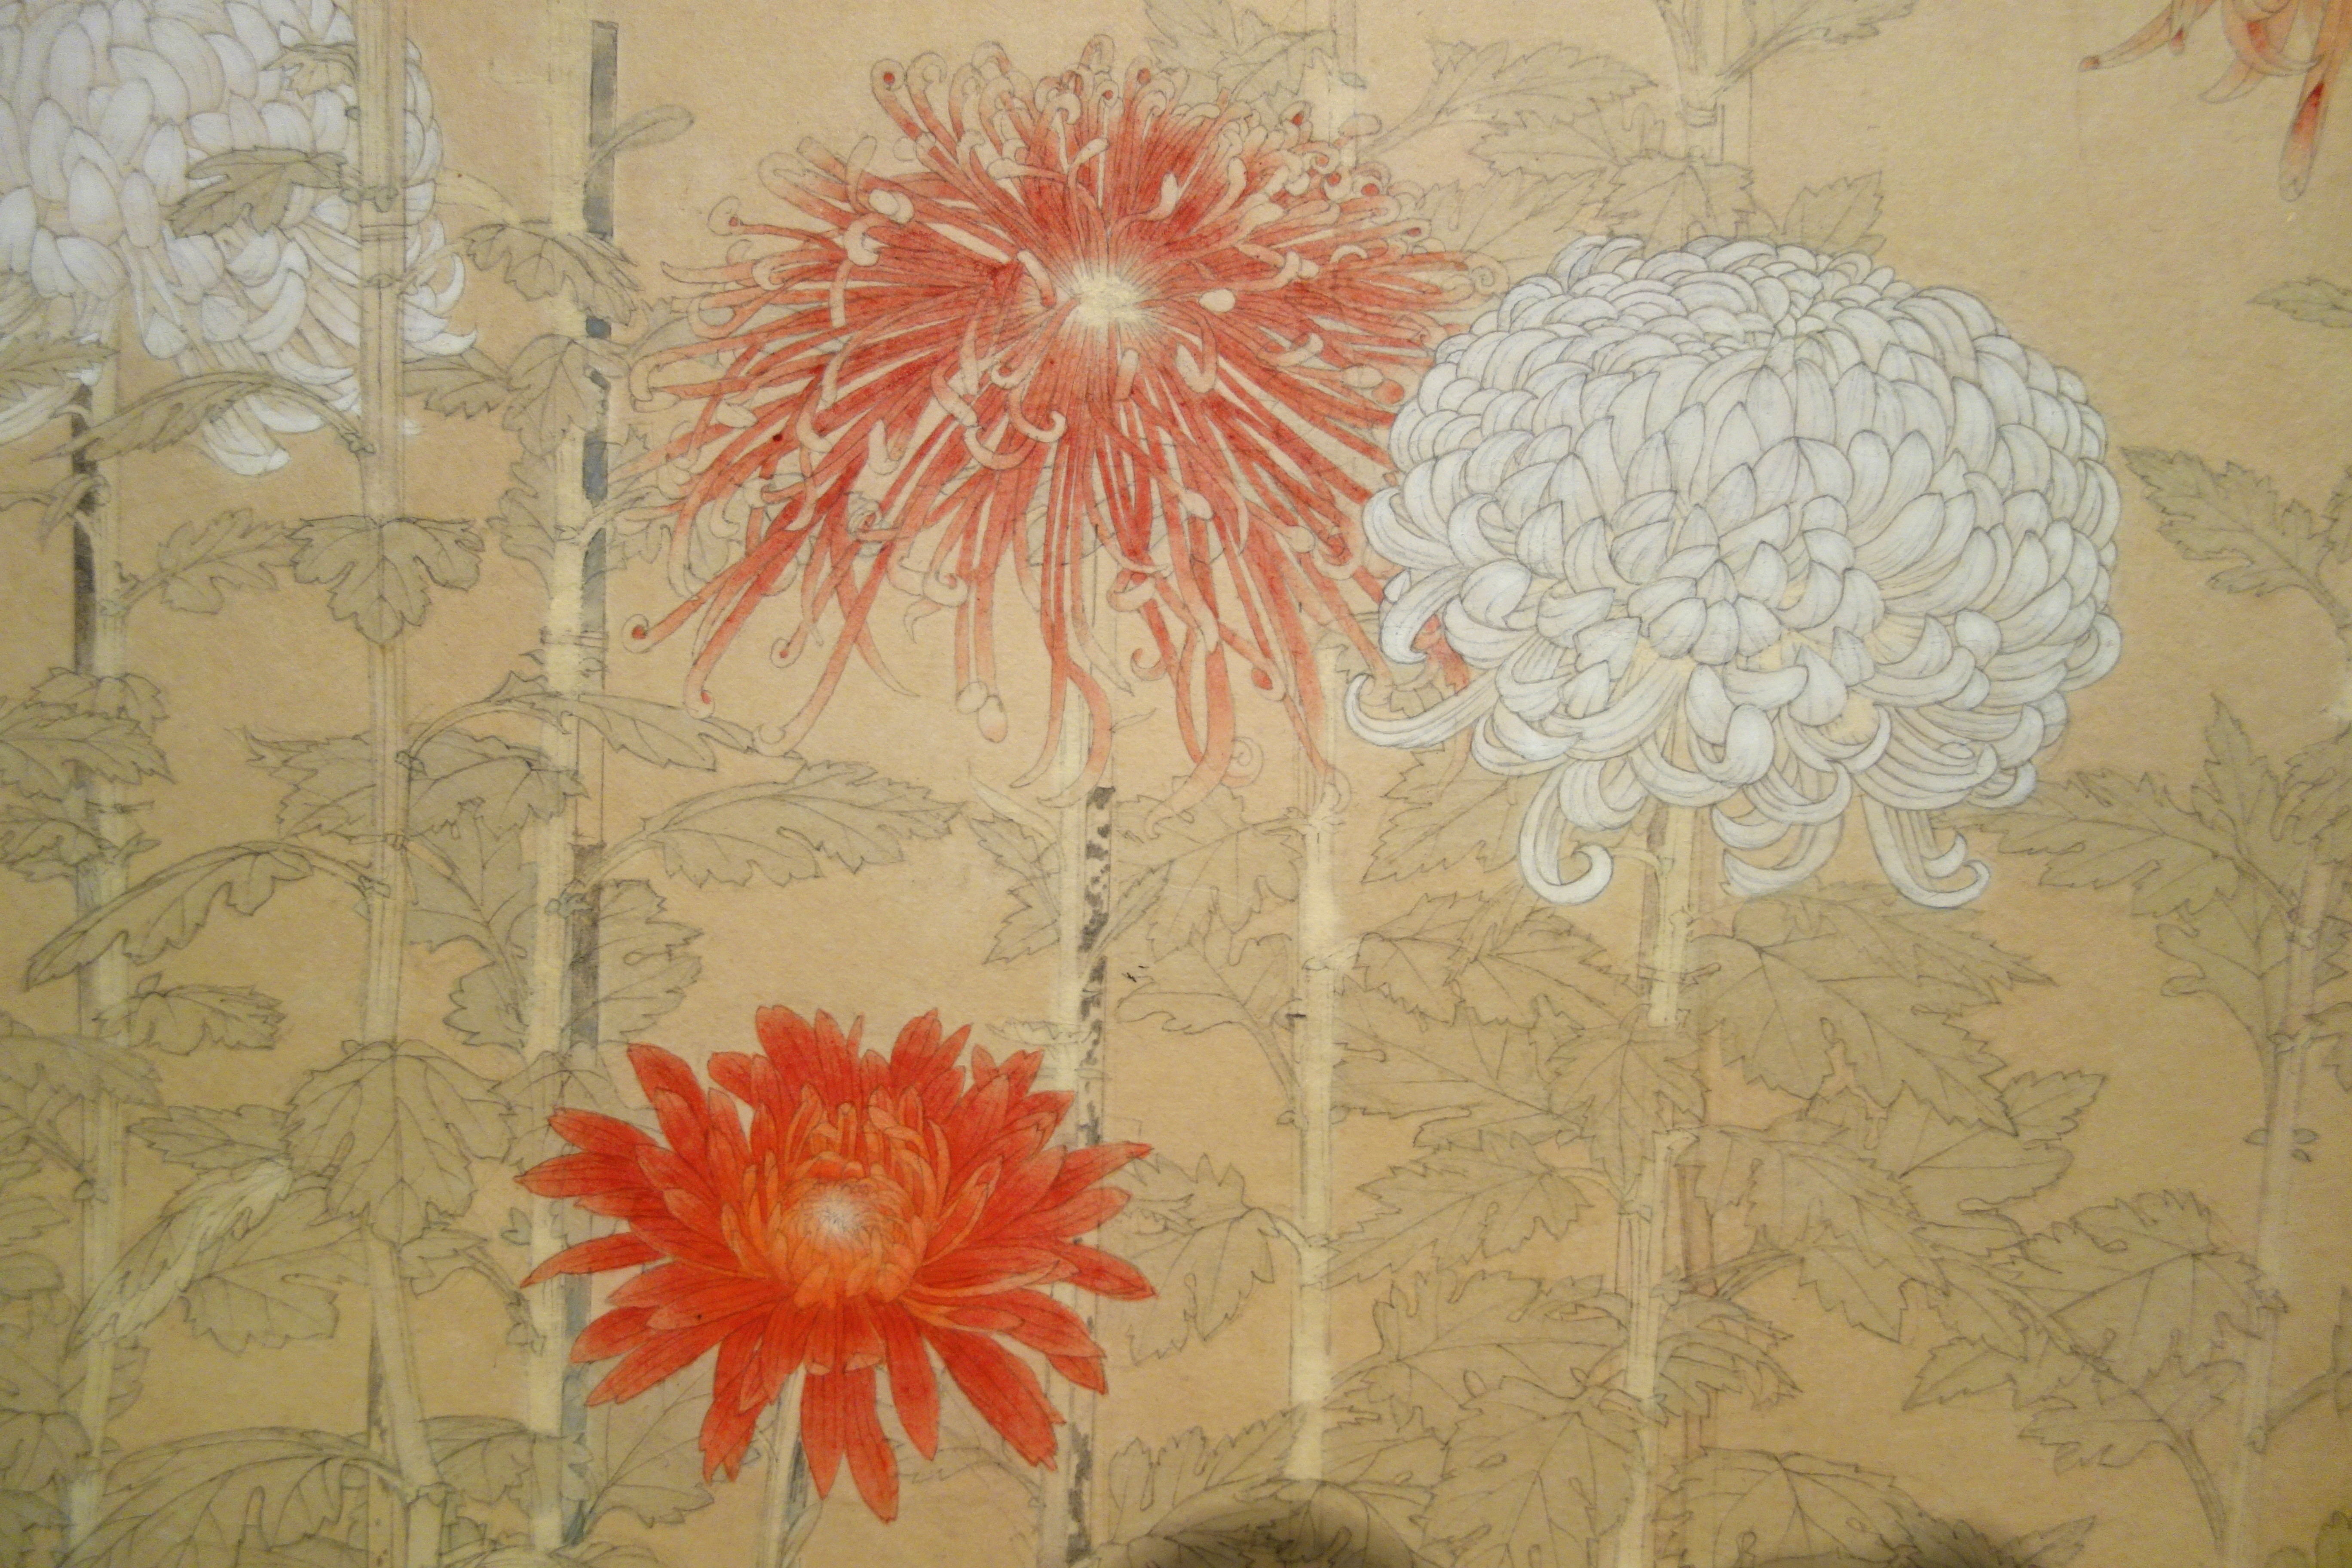 file sketch of chrysanthemums by bakusen tsuchida  detail  c  1933  pencil and color on paper